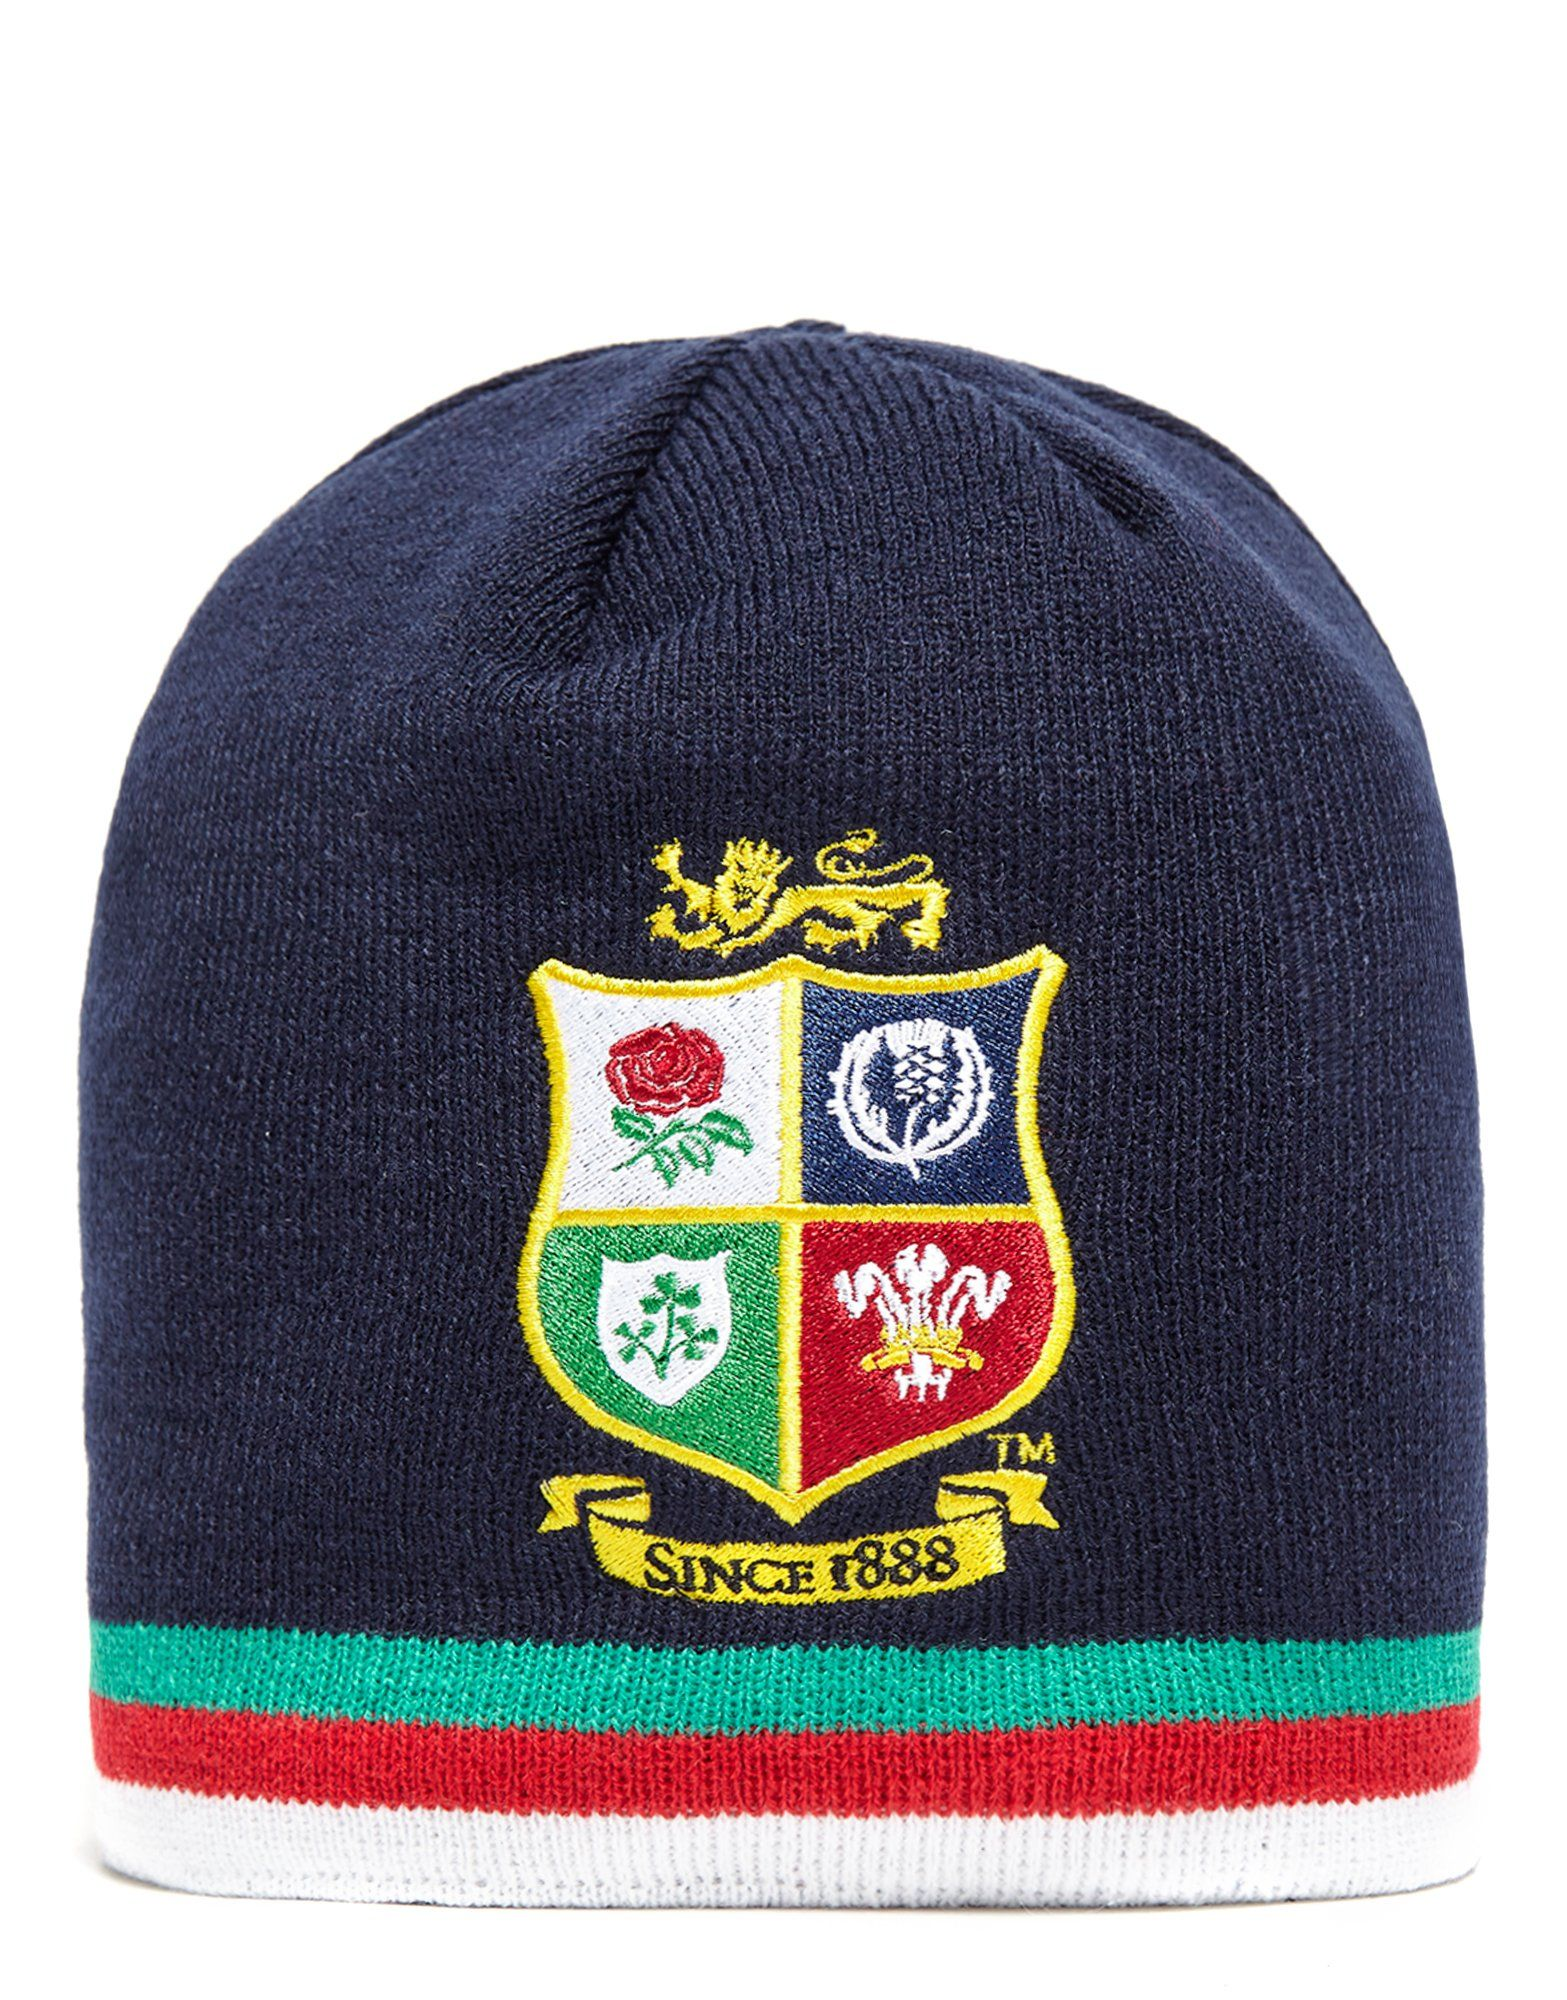 0182ca6cfb7d9 outlet Canterbury British and Irish Lions 2017 Beanie | JD Sports ...